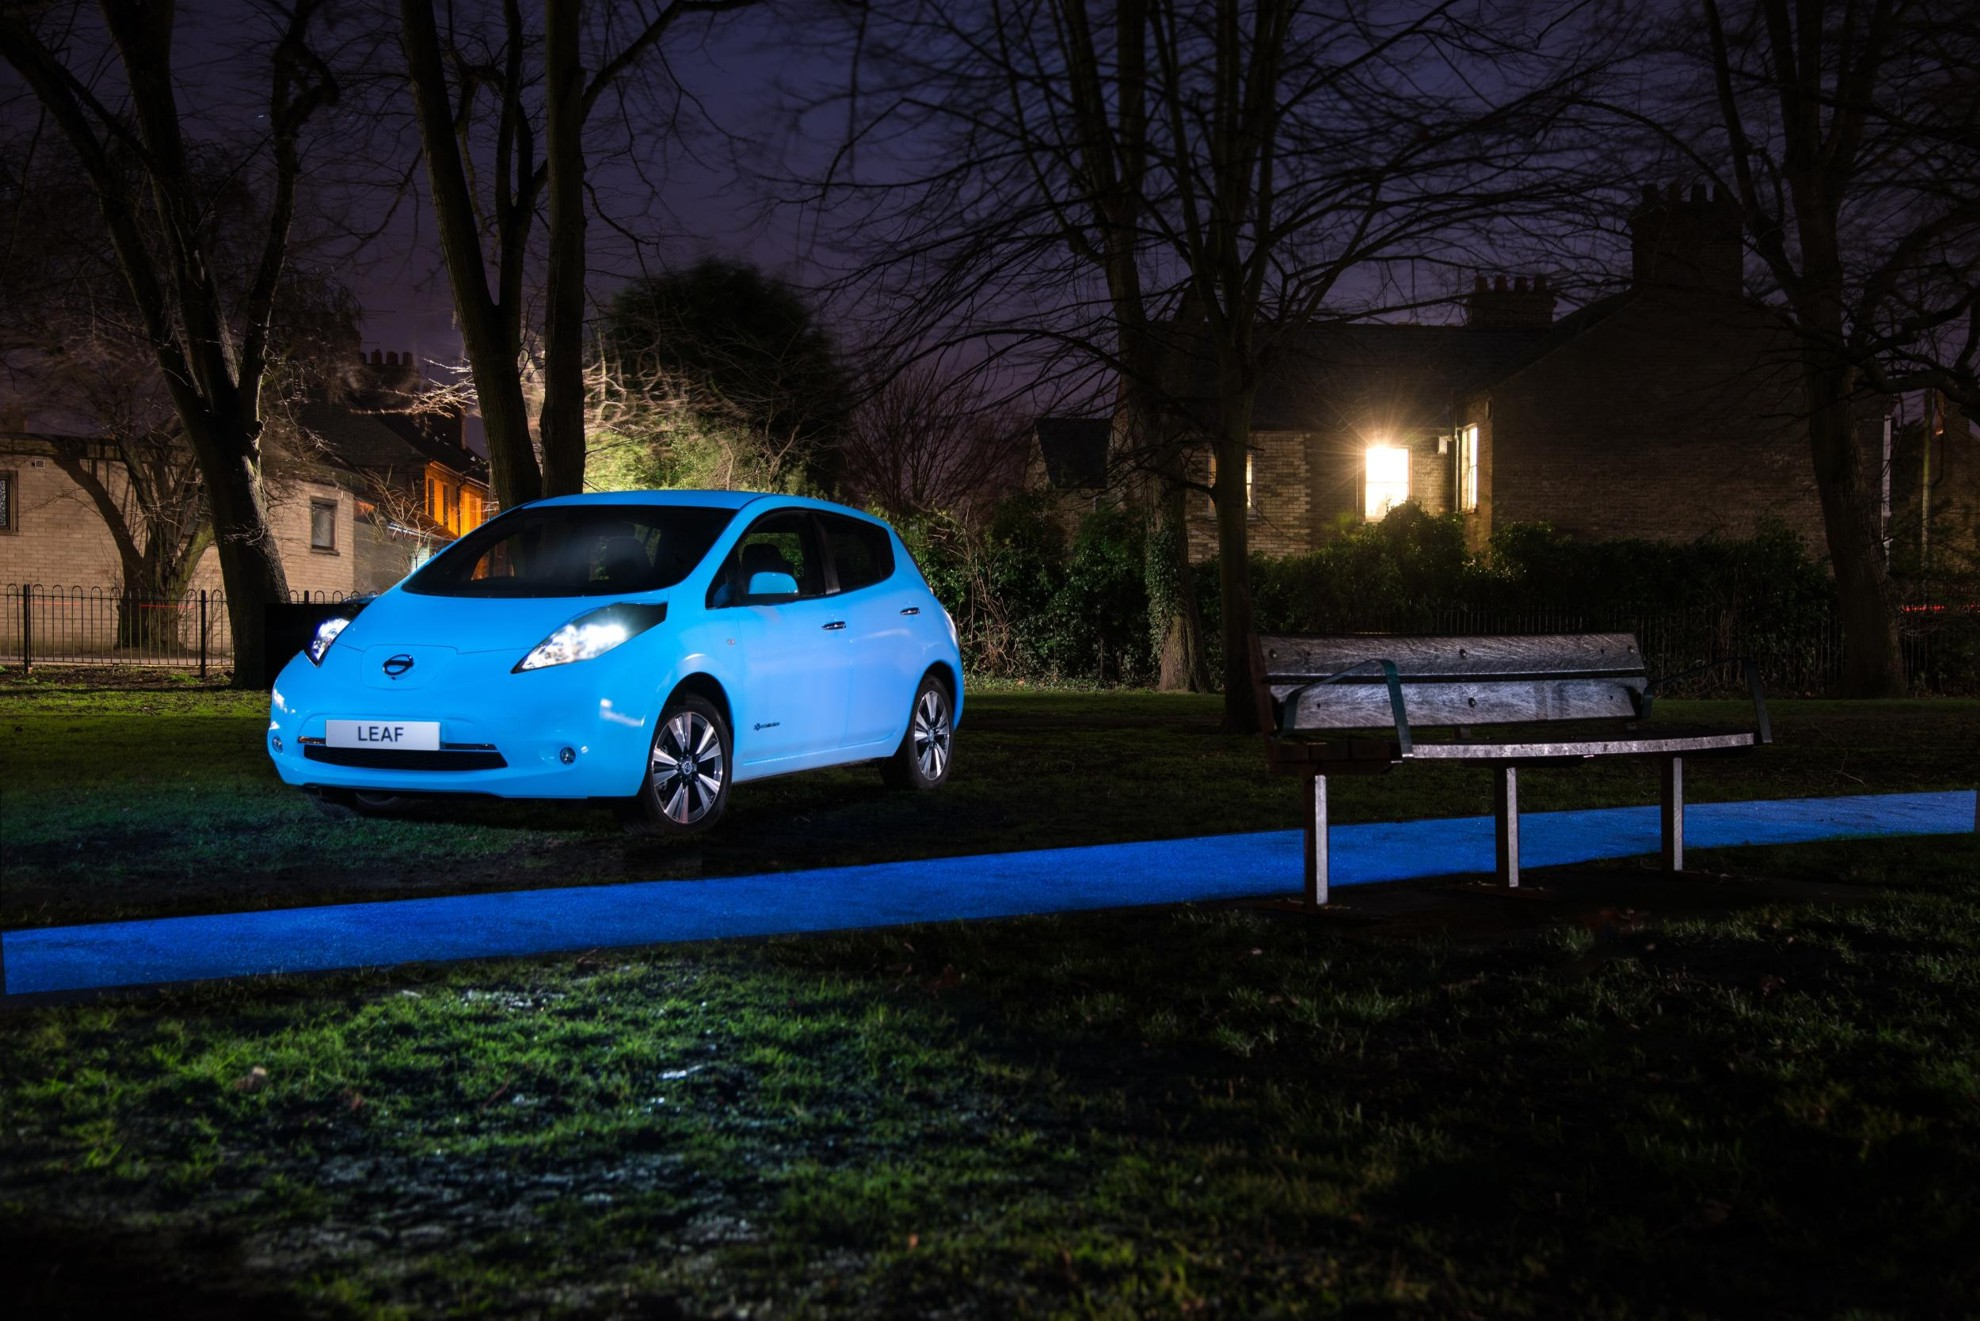 nissan-leaf-glow-in-the-dark3